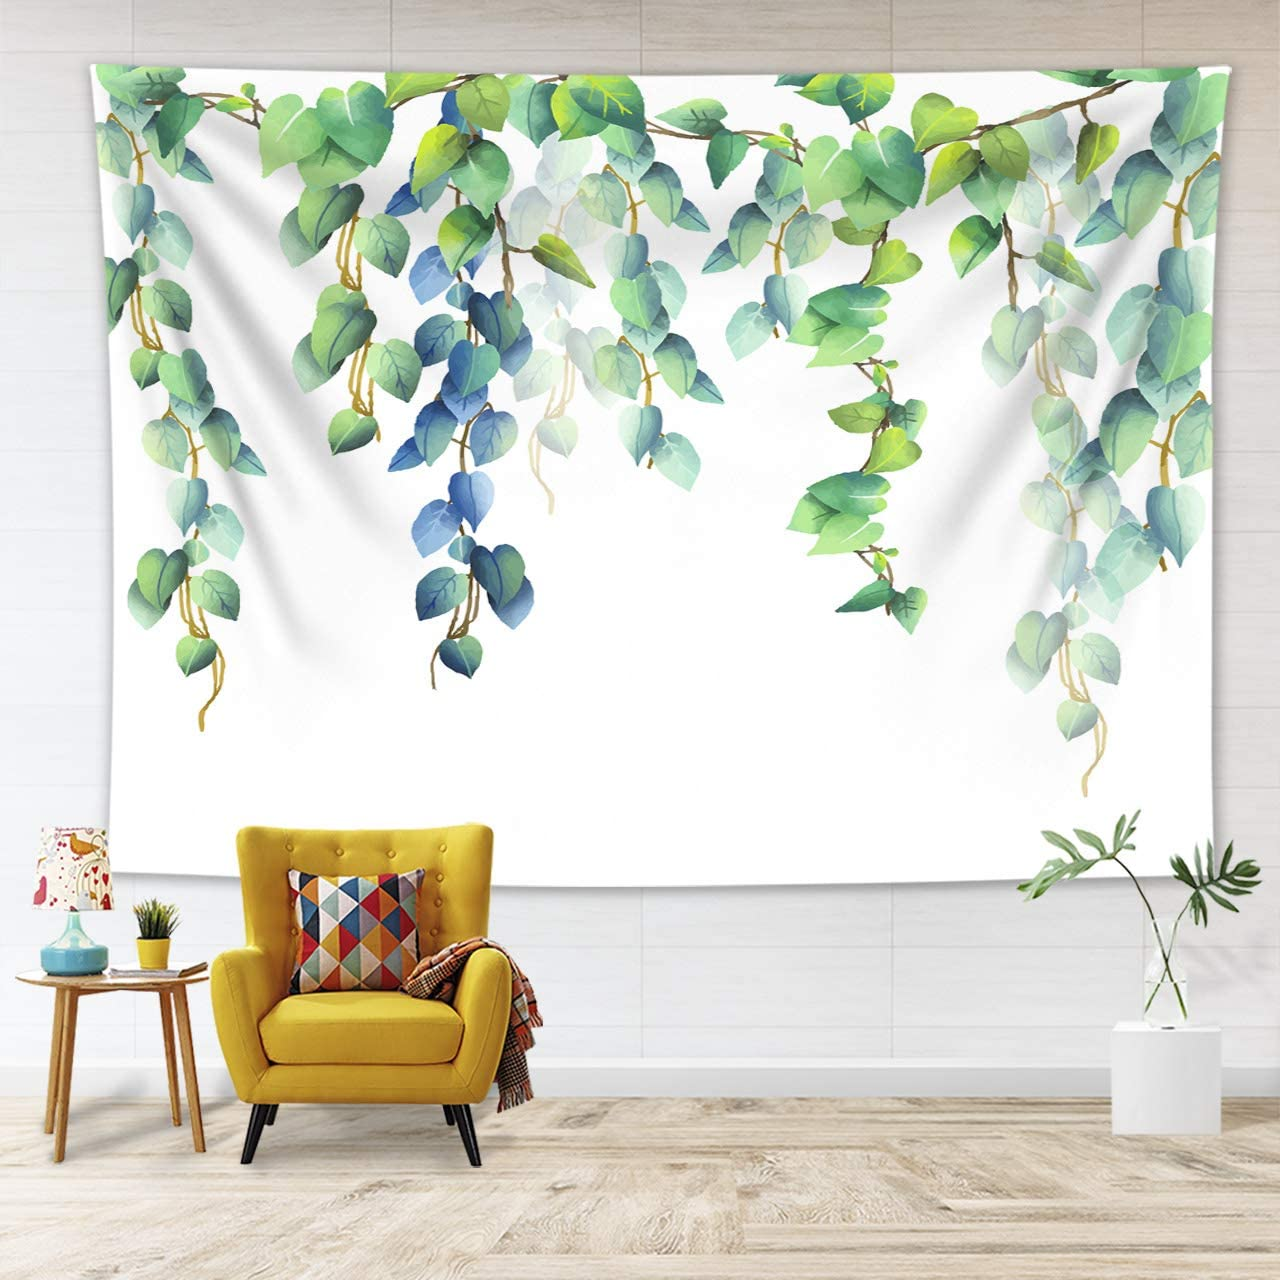 LB Watercolor Blue Green Leaves Tapestry Wall Hanging Fresh Mint Green Leaf Botanical Tapestry Simple Floral Decorative Wall Hanging for Spring Bedroom Living Dining Room Home Decor 60''Lx40''W